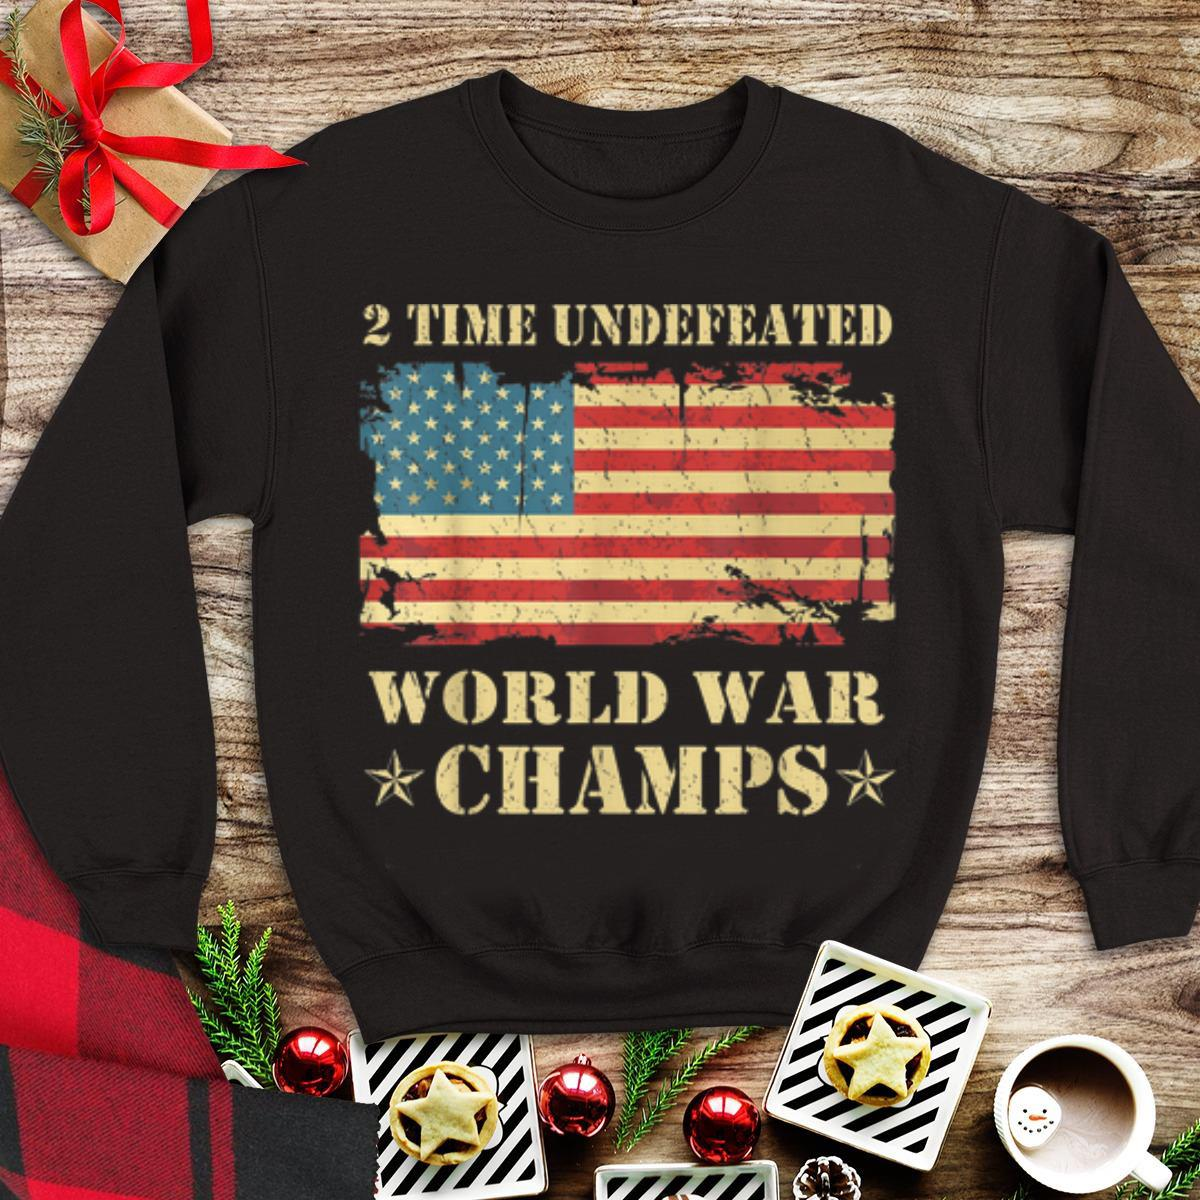 2 Time Undefeated World War Champs Ameican Flag tank top 1 - 2 Time Undefeated World War Champs Ameican Flag tank top